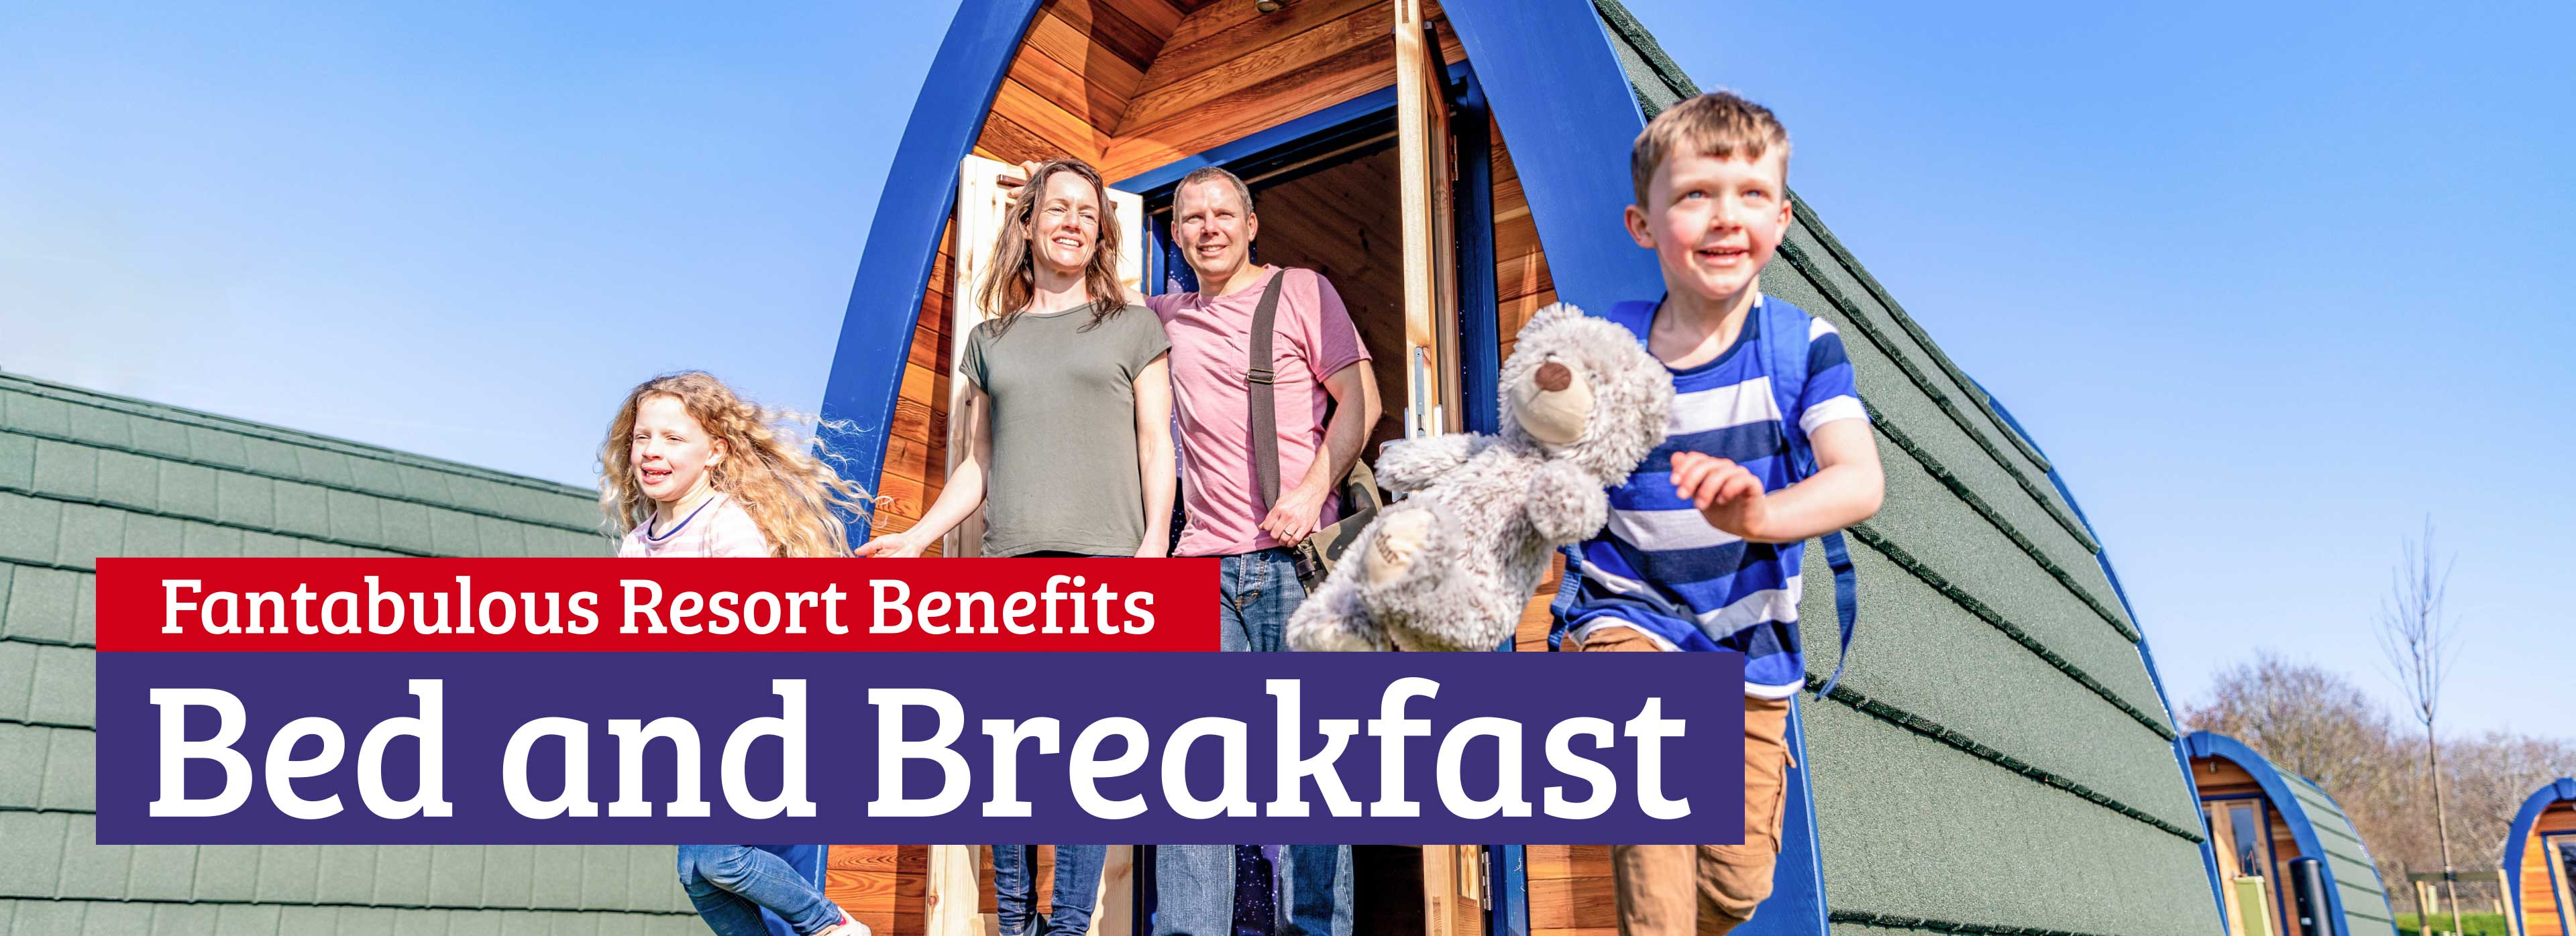 Bed and Breakfast at Alton Towers Resort